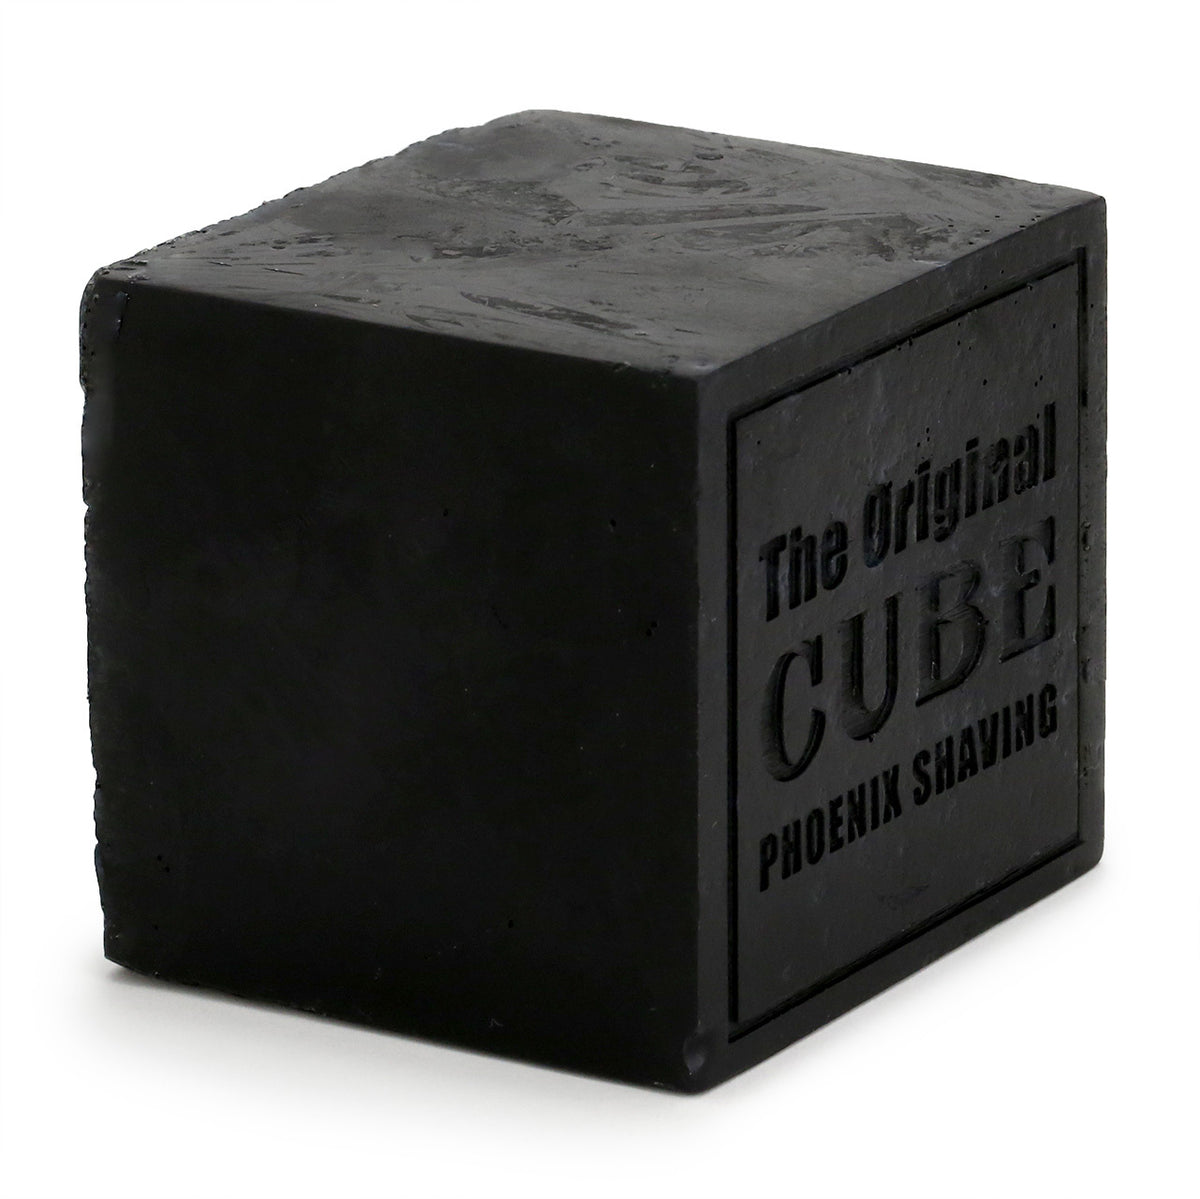 Phoenix Shaving CUBE 2.0 Scentless Non-Mentholated Pre-Shave Soap